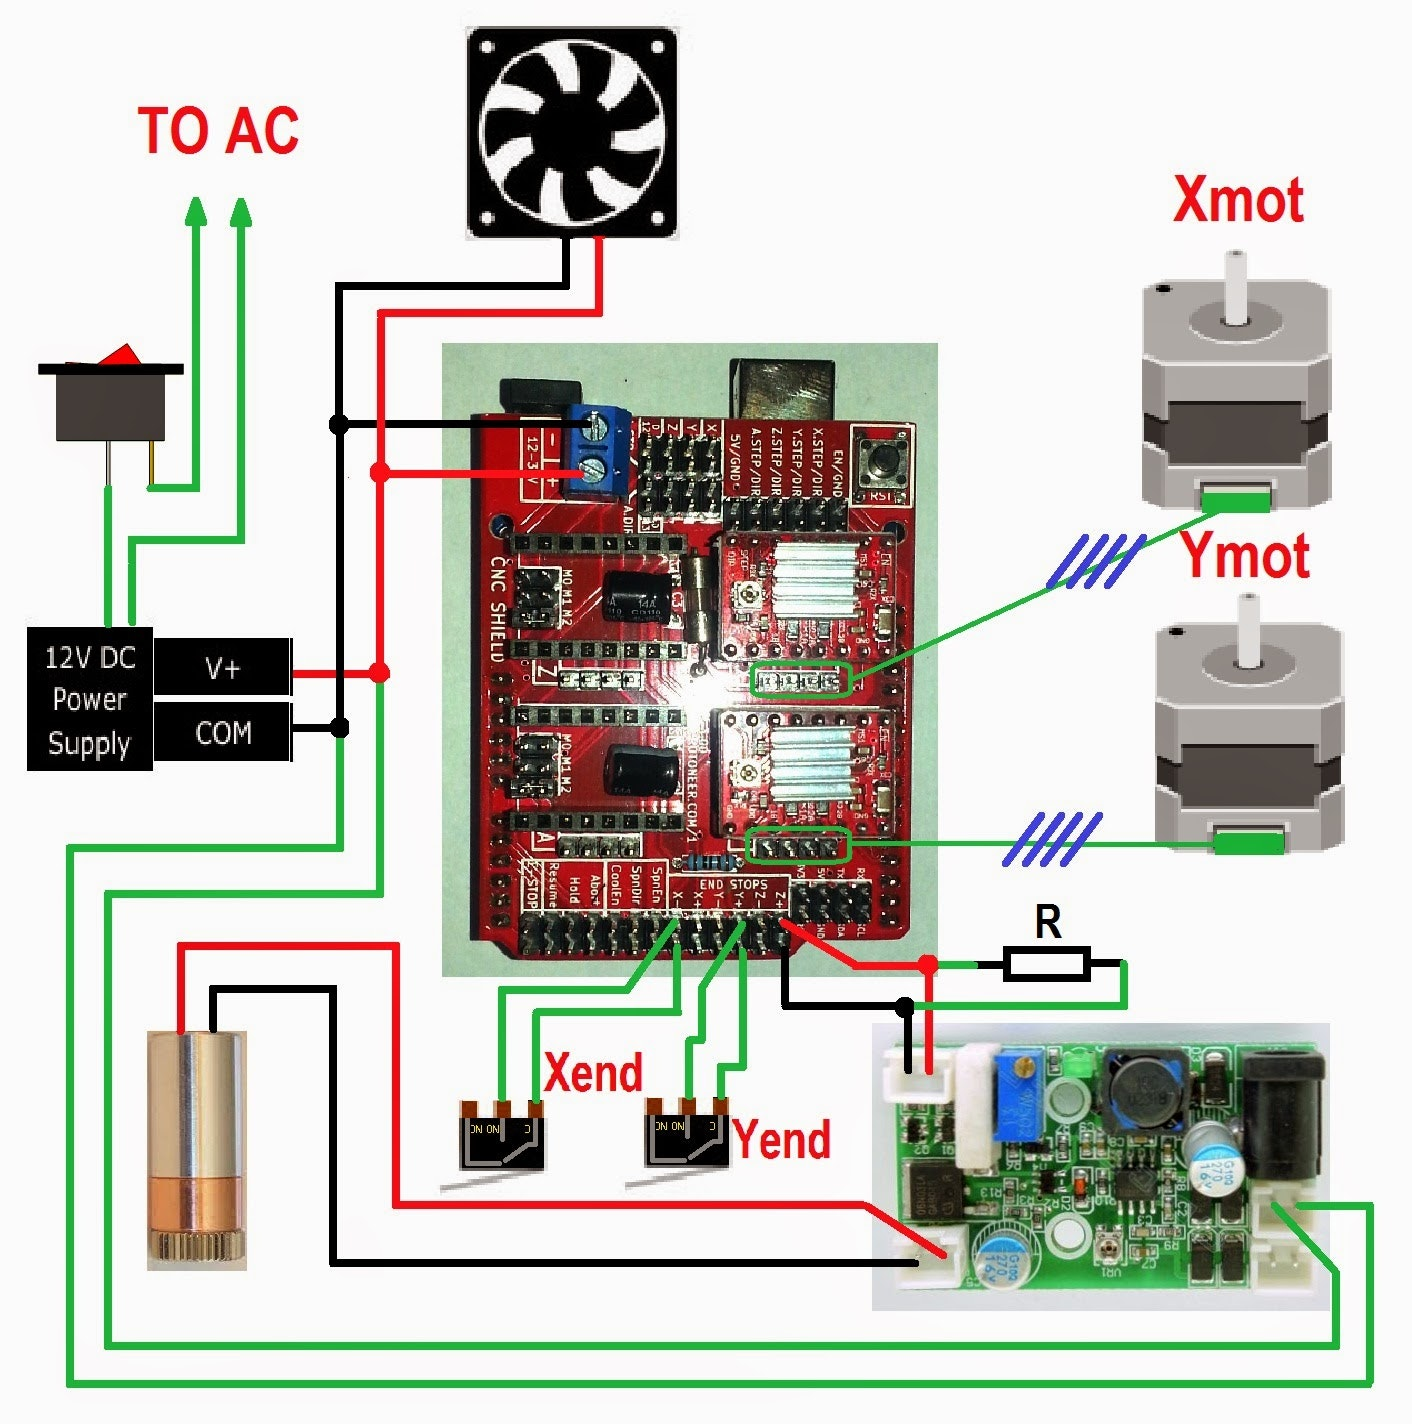 3dpBurnerBasicWiring?auto=compress%2Cformat&w=680&h=510&fit=max laser engraver with arduino hackster io Robotic Arm Diagram at readyjetset.co